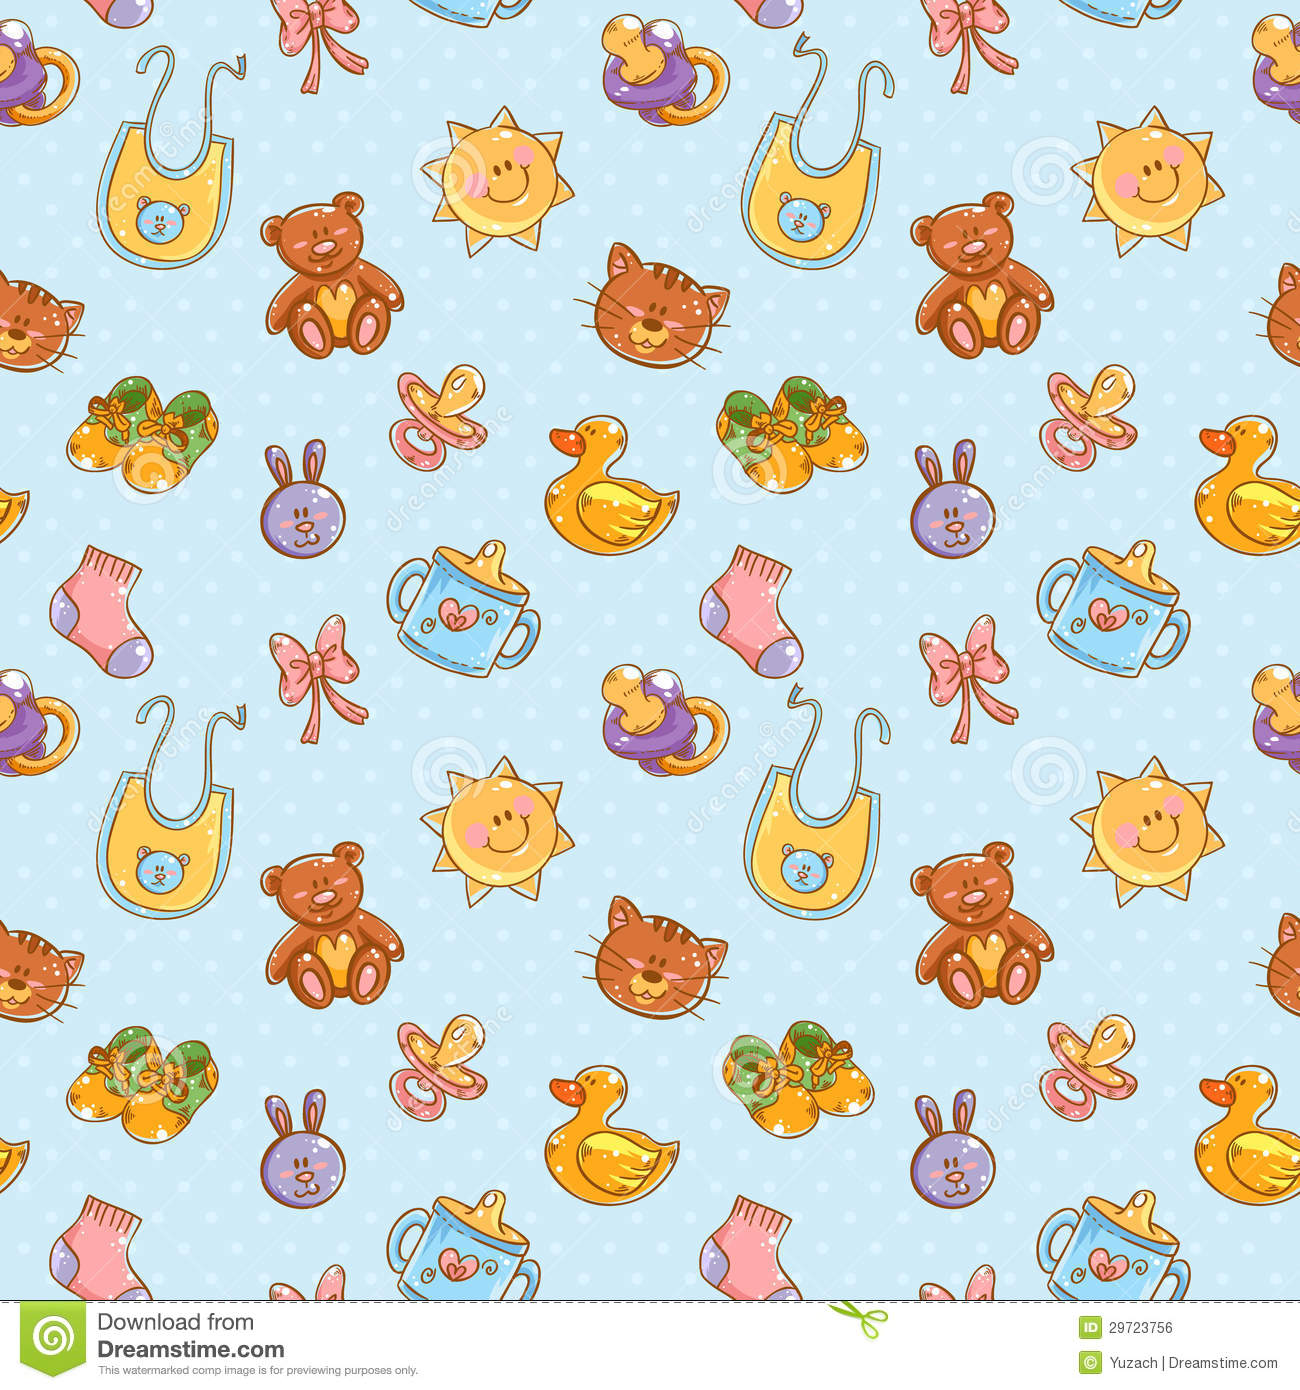 Baby bed sheet pattern - Pink Bed Sheet Texture Baby Toys Cute Cartoon Set Seamless Pattern Royalty Free Download